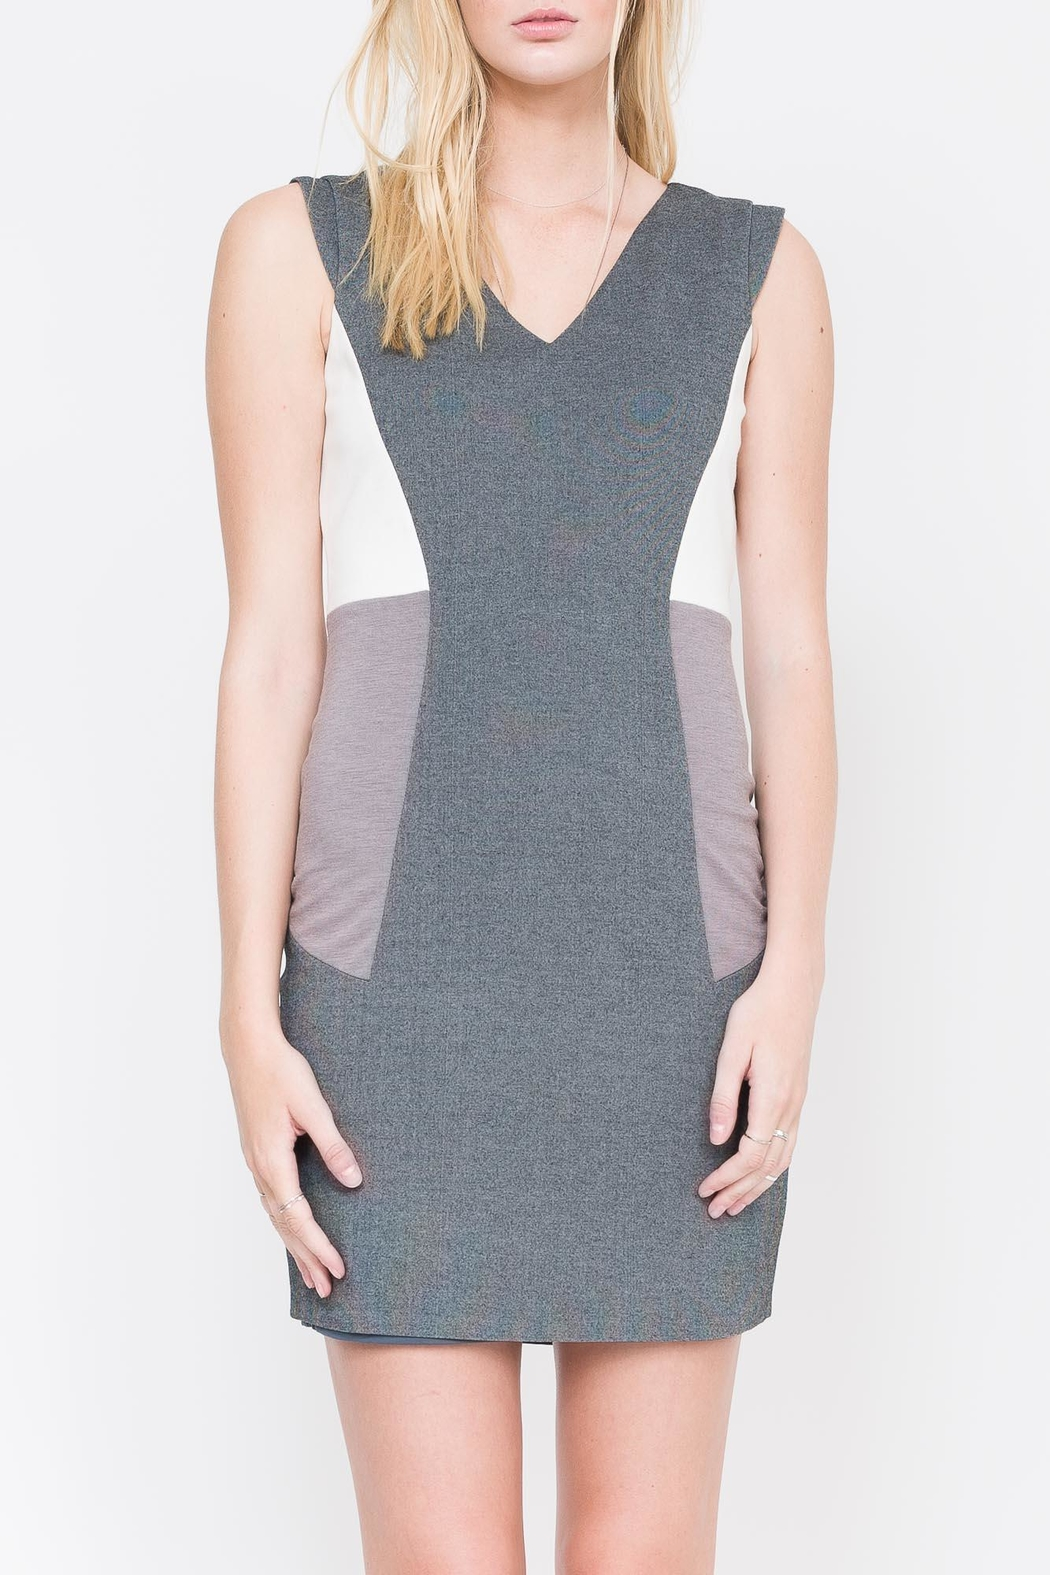 QUINN Nerissa Color-Blocked Dress - Front Full Image